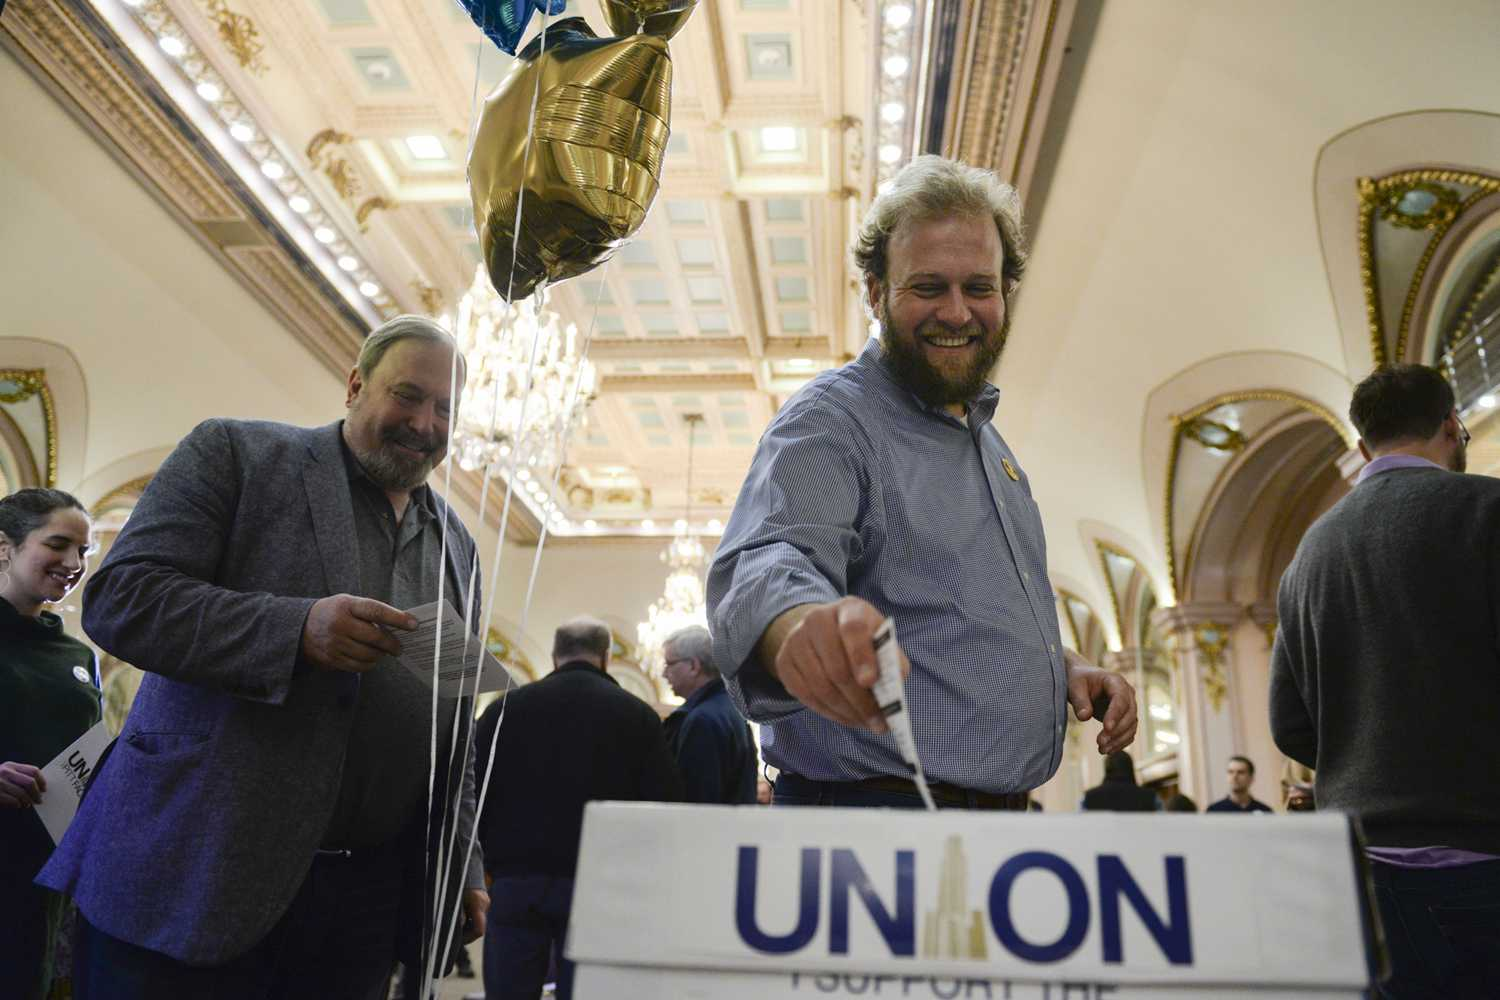 Tyler Bickford, a professor in the English department, drops one of the first union cards at a kick-off event held by Pitt faculty union organizers Monday in the William Pitt Union Ballroom. (Photo by John Hamilton | Contributing Editor)